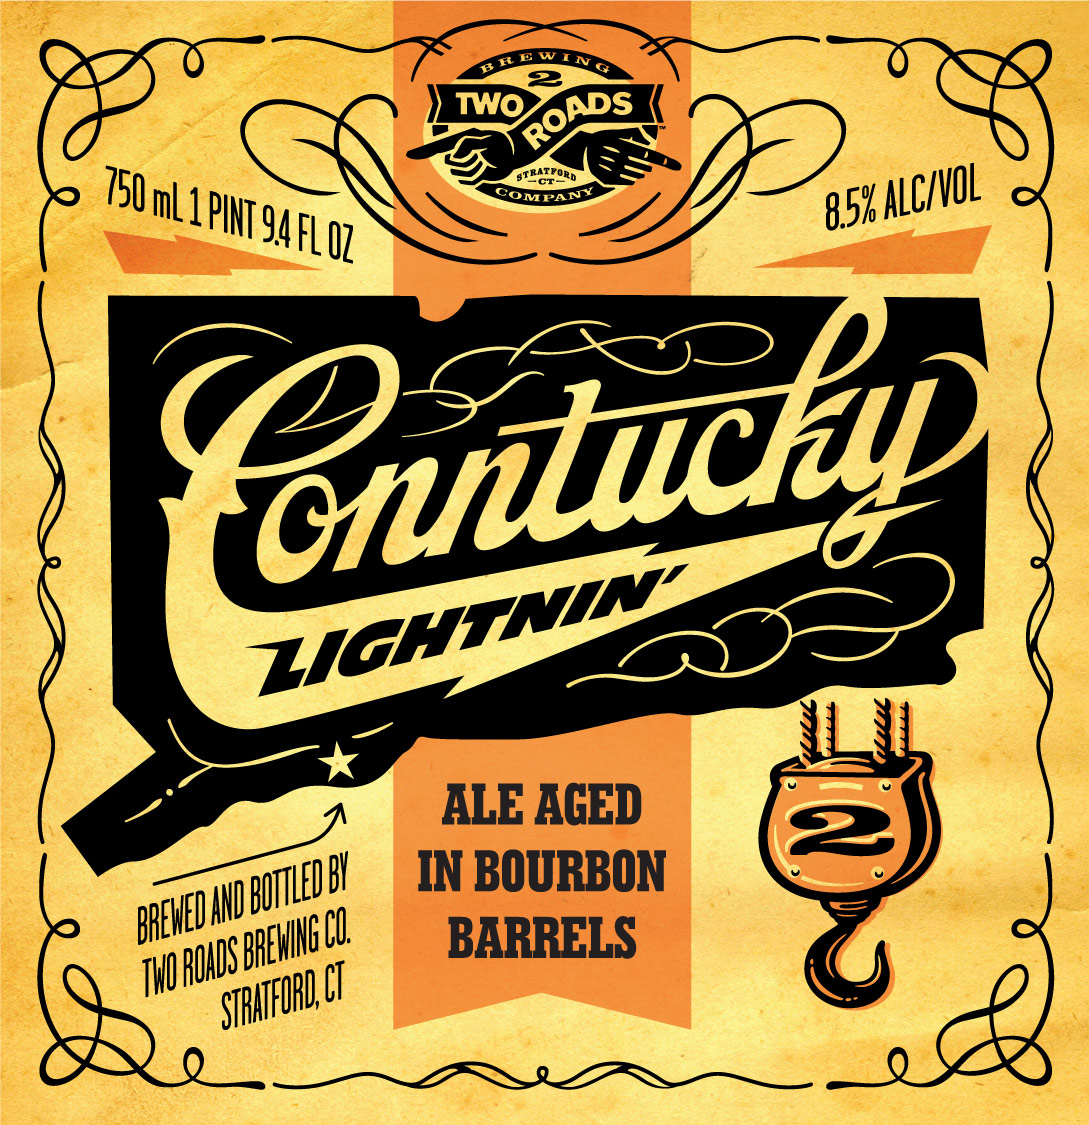 TWO ROADS CONNTUCKY LIGHTNIN' BOURBON ALE ARRIVES ON DERBY DAY